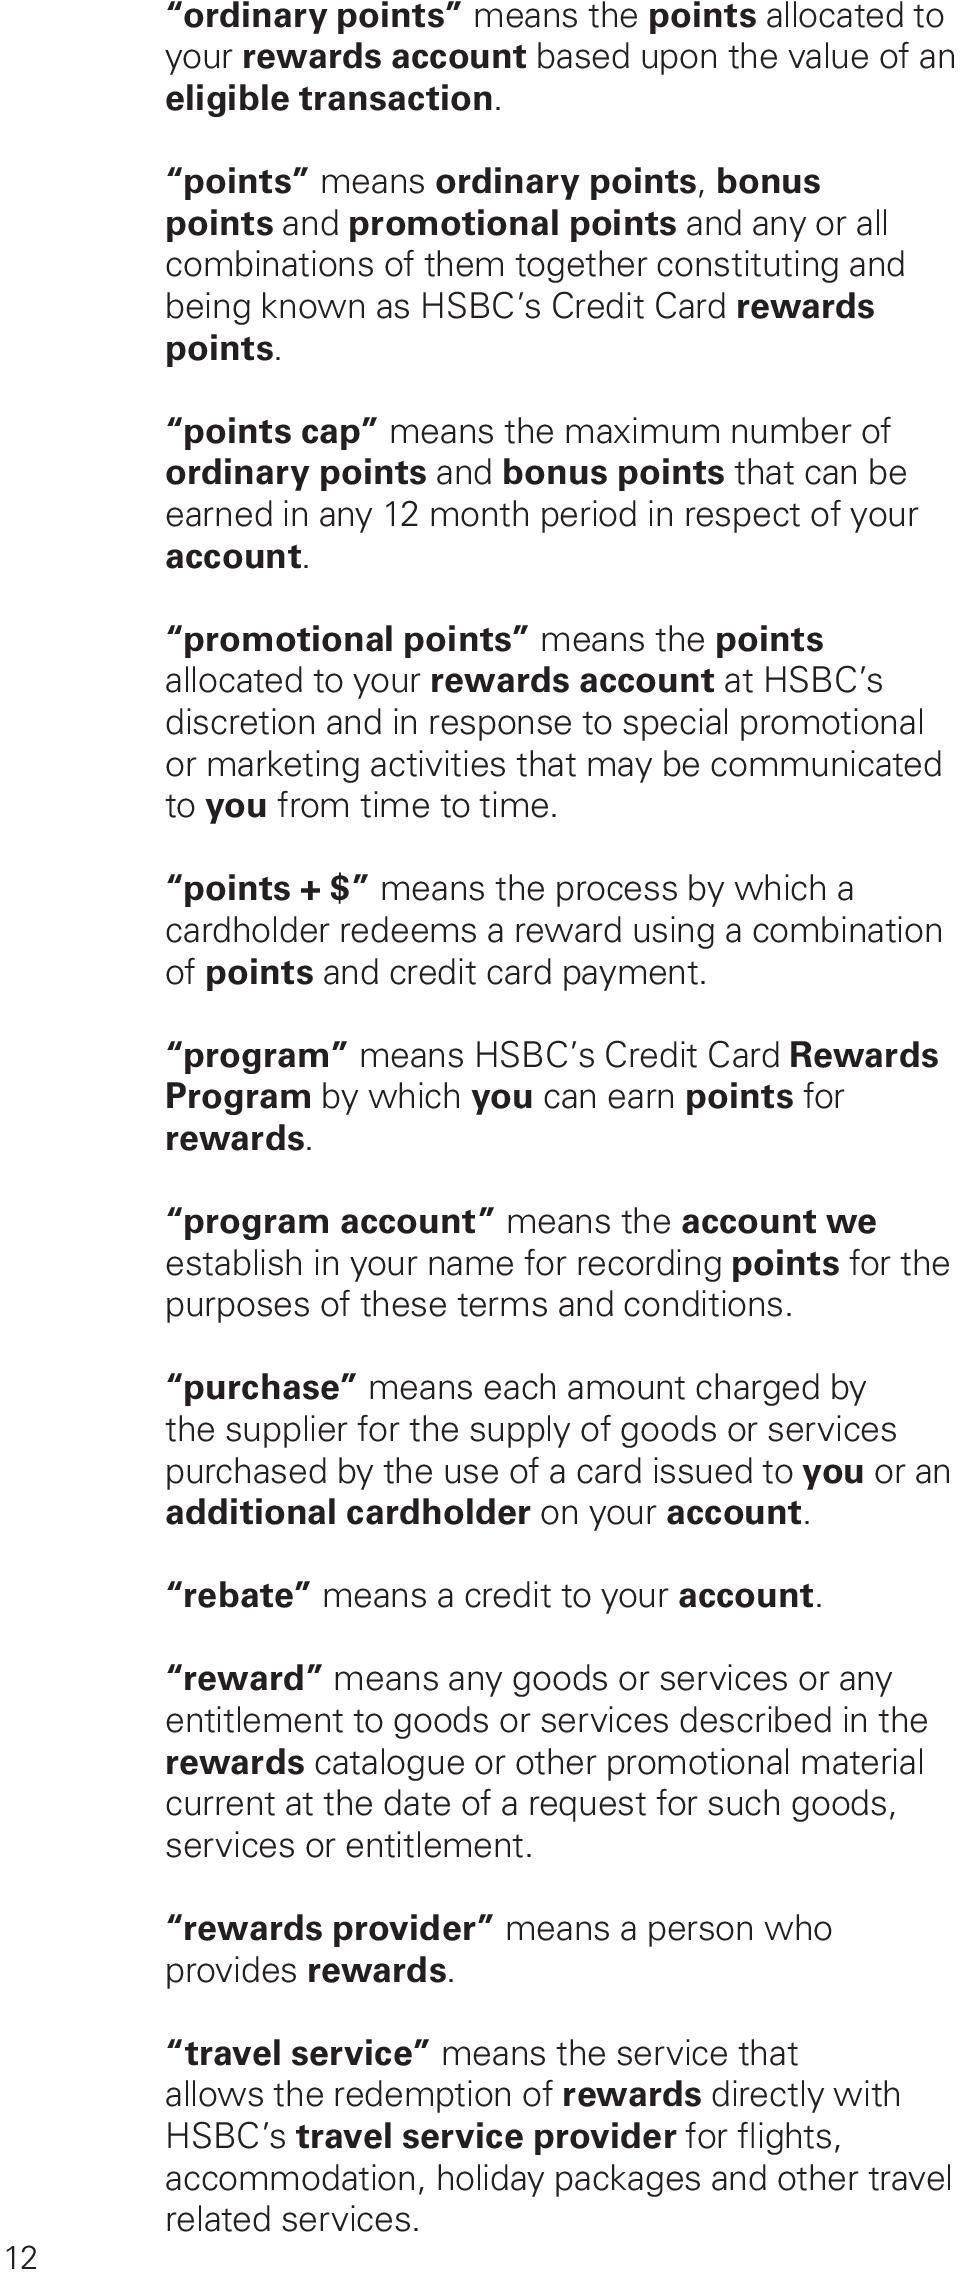 points cap means the maximum number of ordinary points and bonus points that can be earned in any 12 month period in respect of your account.